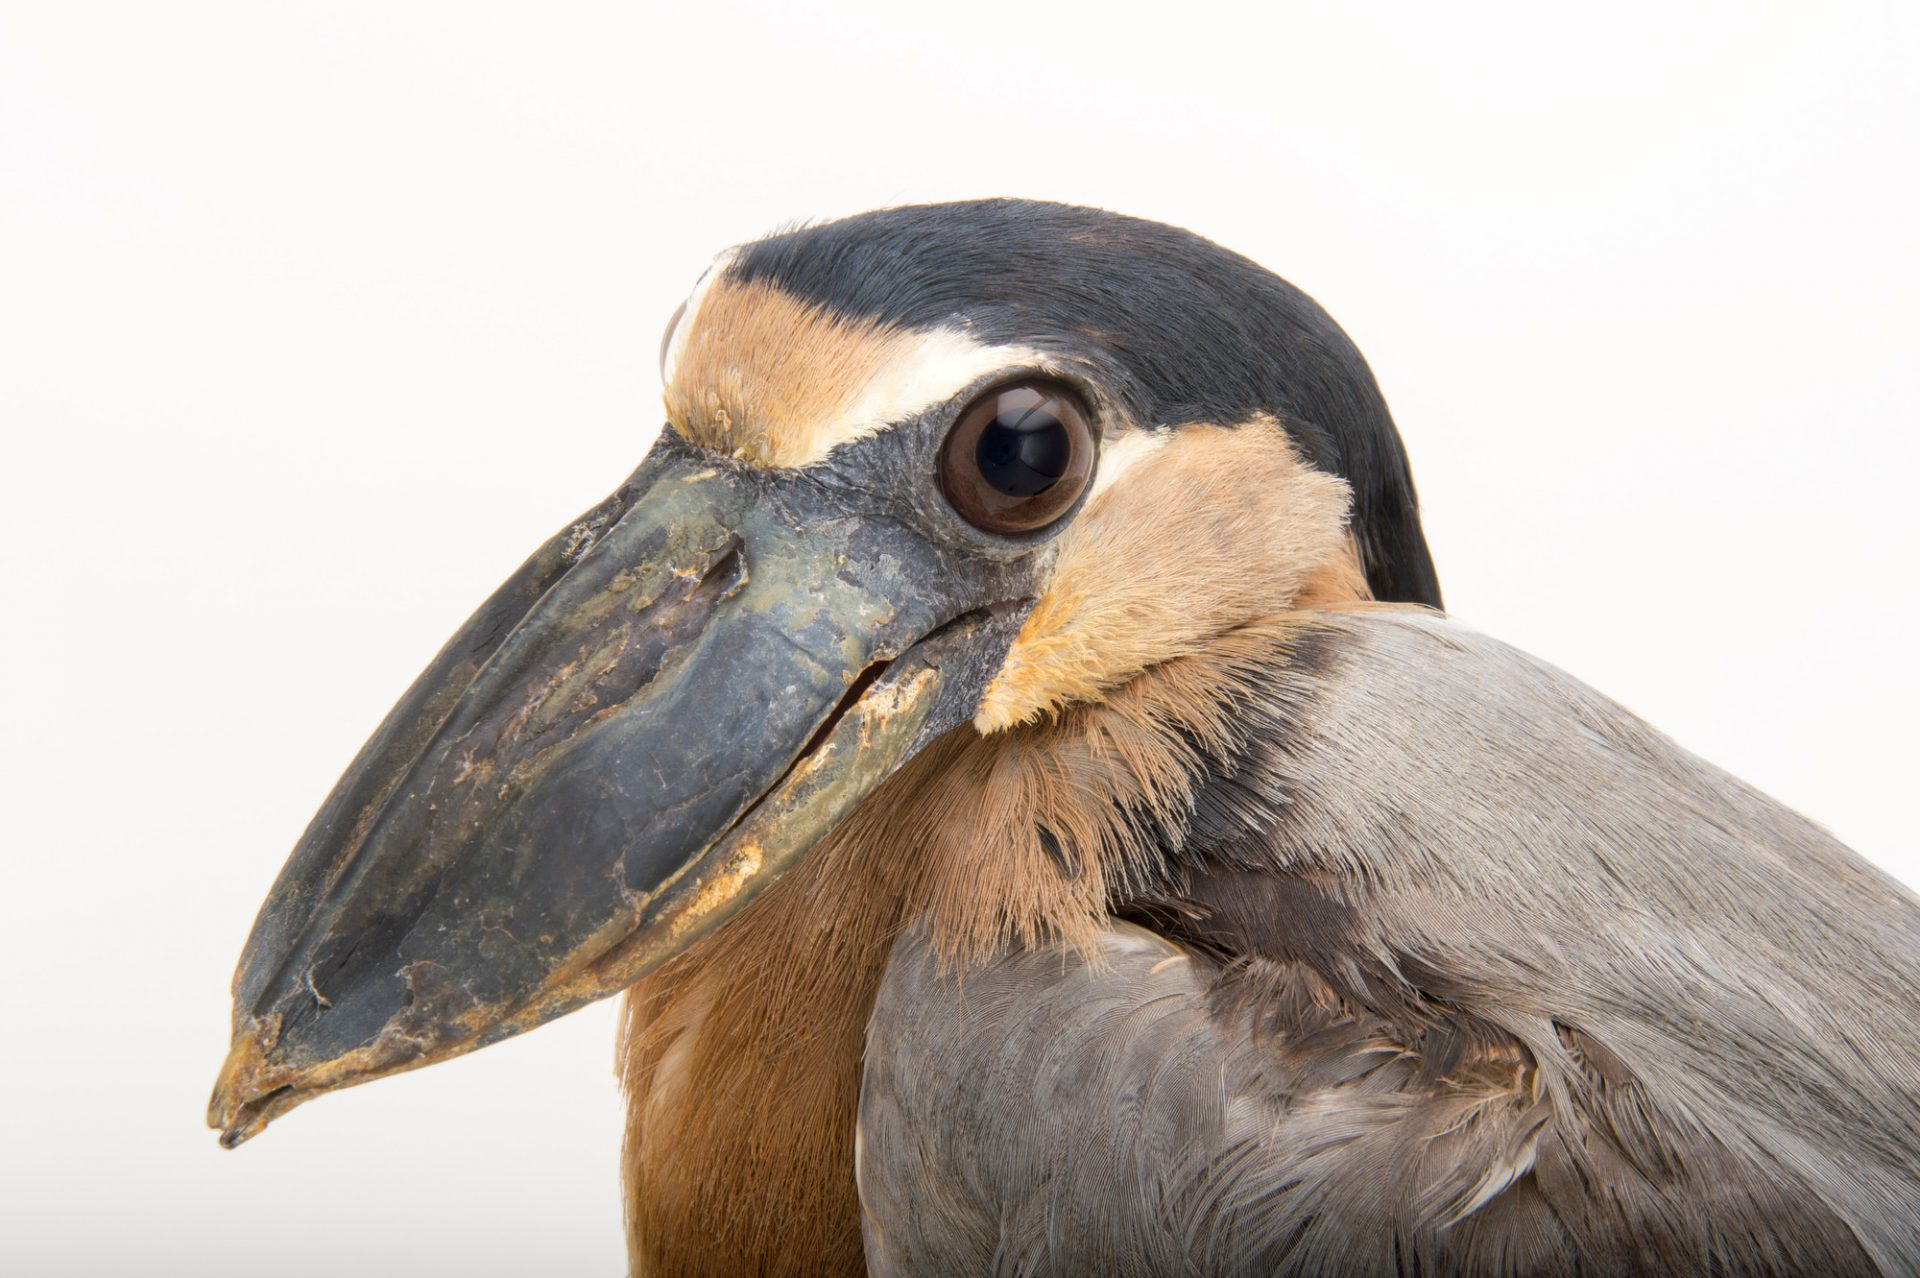 Picture of a boat billed heron (Cochlearius cochlearius ridgwayi) at the Knoxville Zoo.